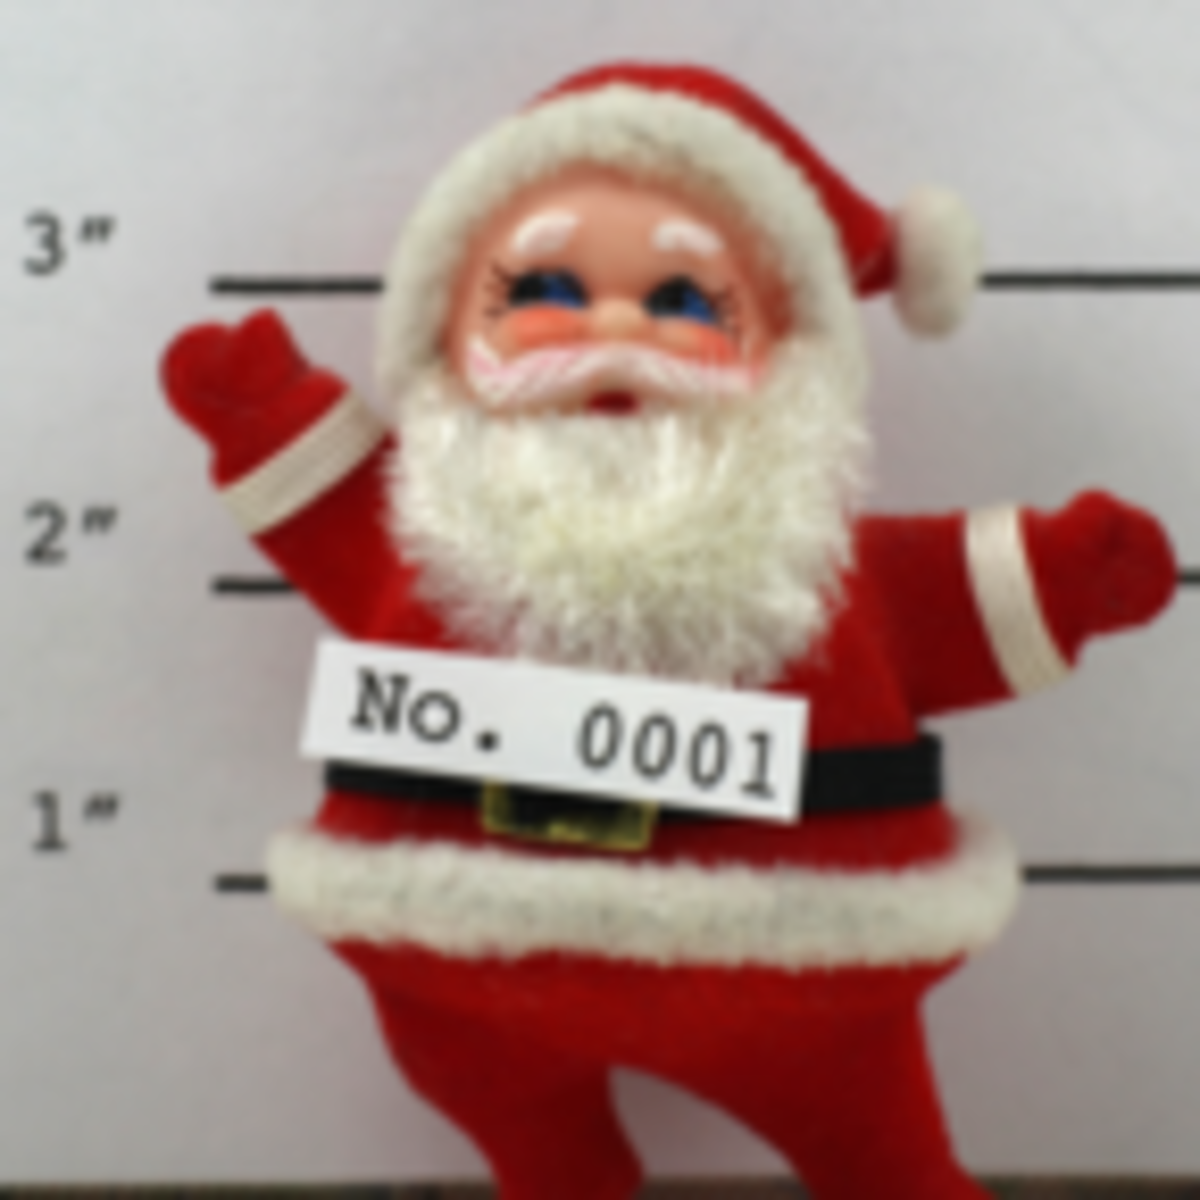 The Santa Claus Lie Debate: Answering Objections